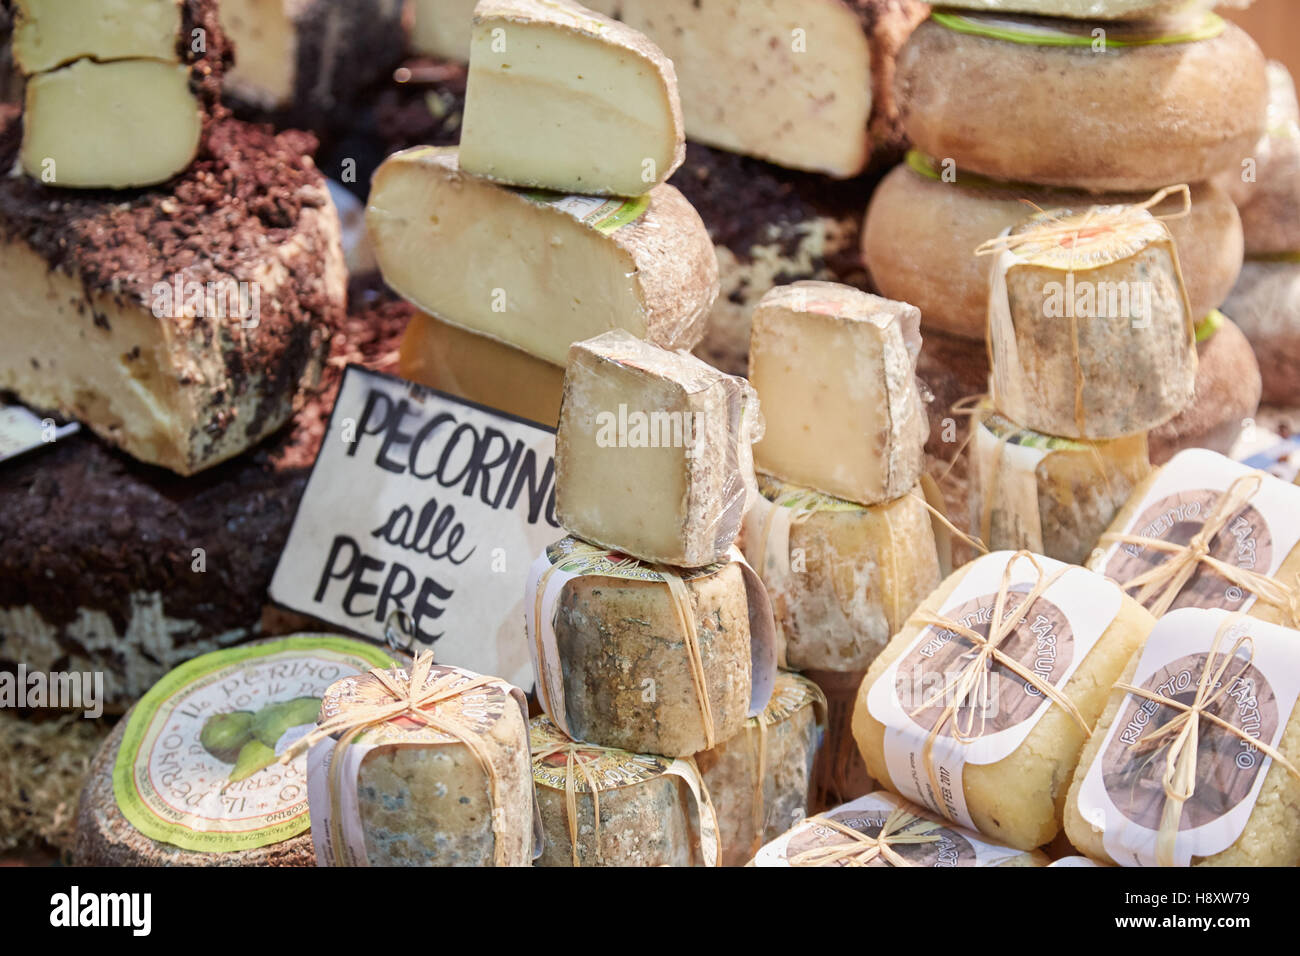 Typical cheese on sale during Alba White Truffle Fair in Alba, Italy - Stock Image